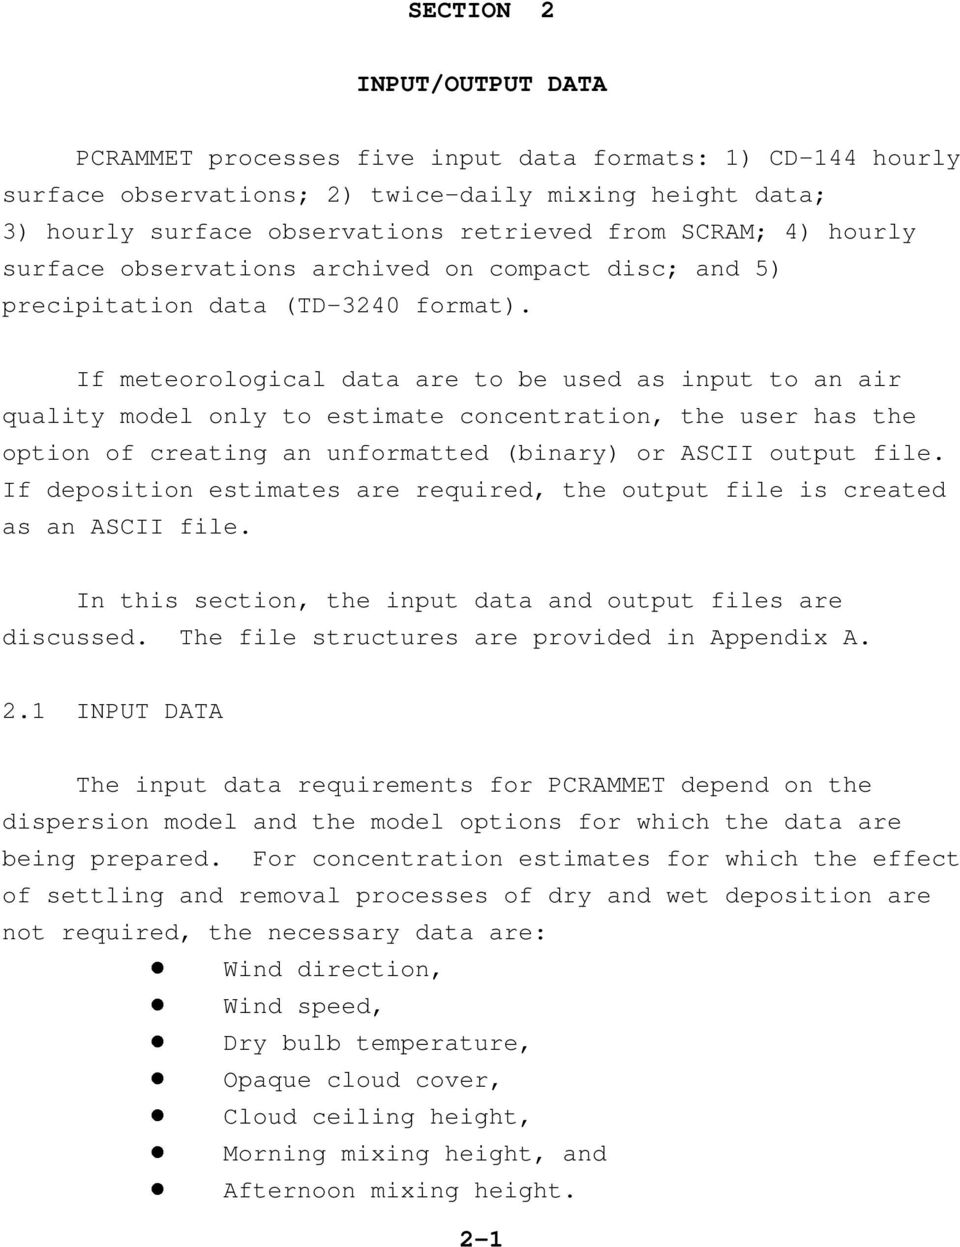 If meteorological data are to be used as input to an air quality model only to estimate concentration, the user has the option of creating an unformatted (binary) or ASCII output file.